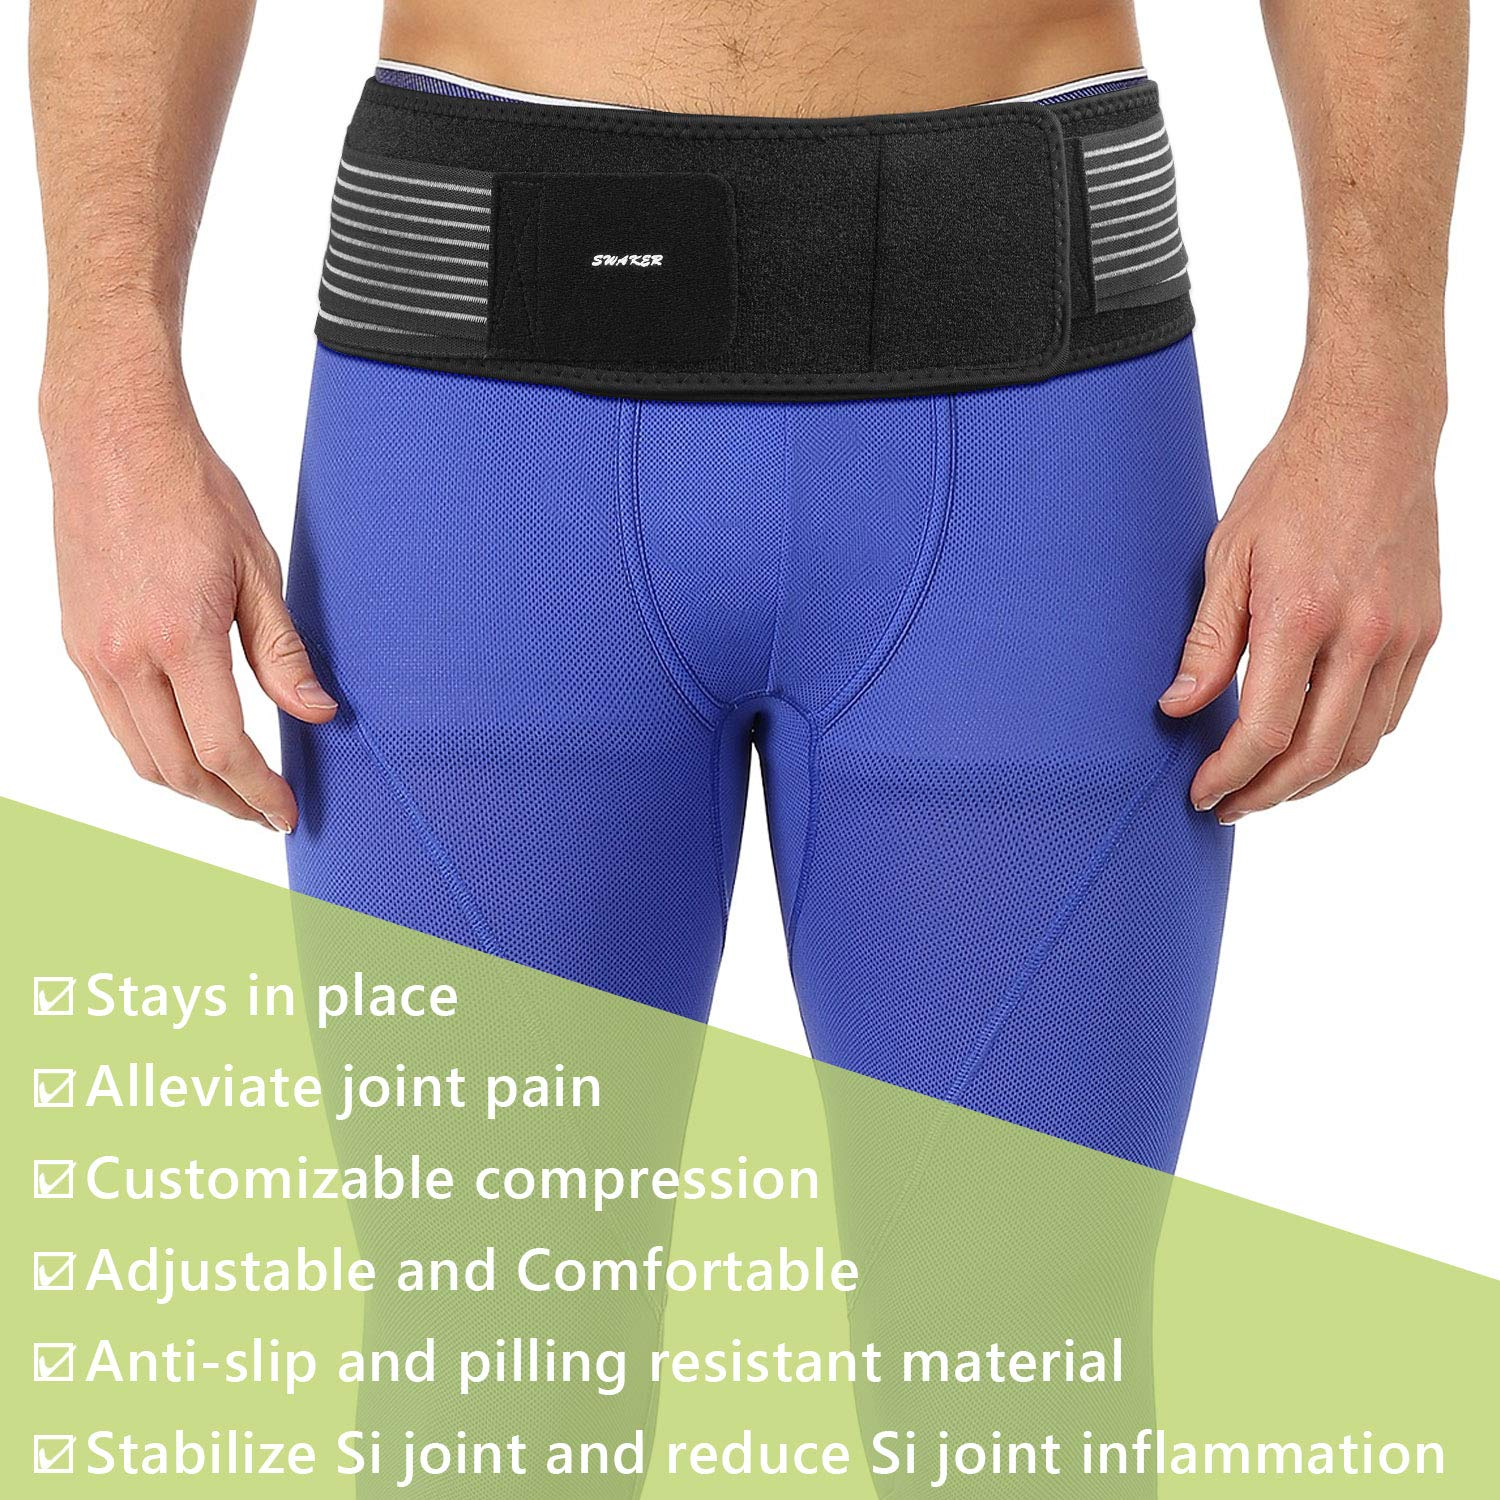 Si Belt for Women and Men - Sacroiliac Belt, Stabilize SI Joint | Relieve Sciatic, Pelvic, Lower Back and Leg Pain, Anti-Slip & Pilling-Resistant & Breathable